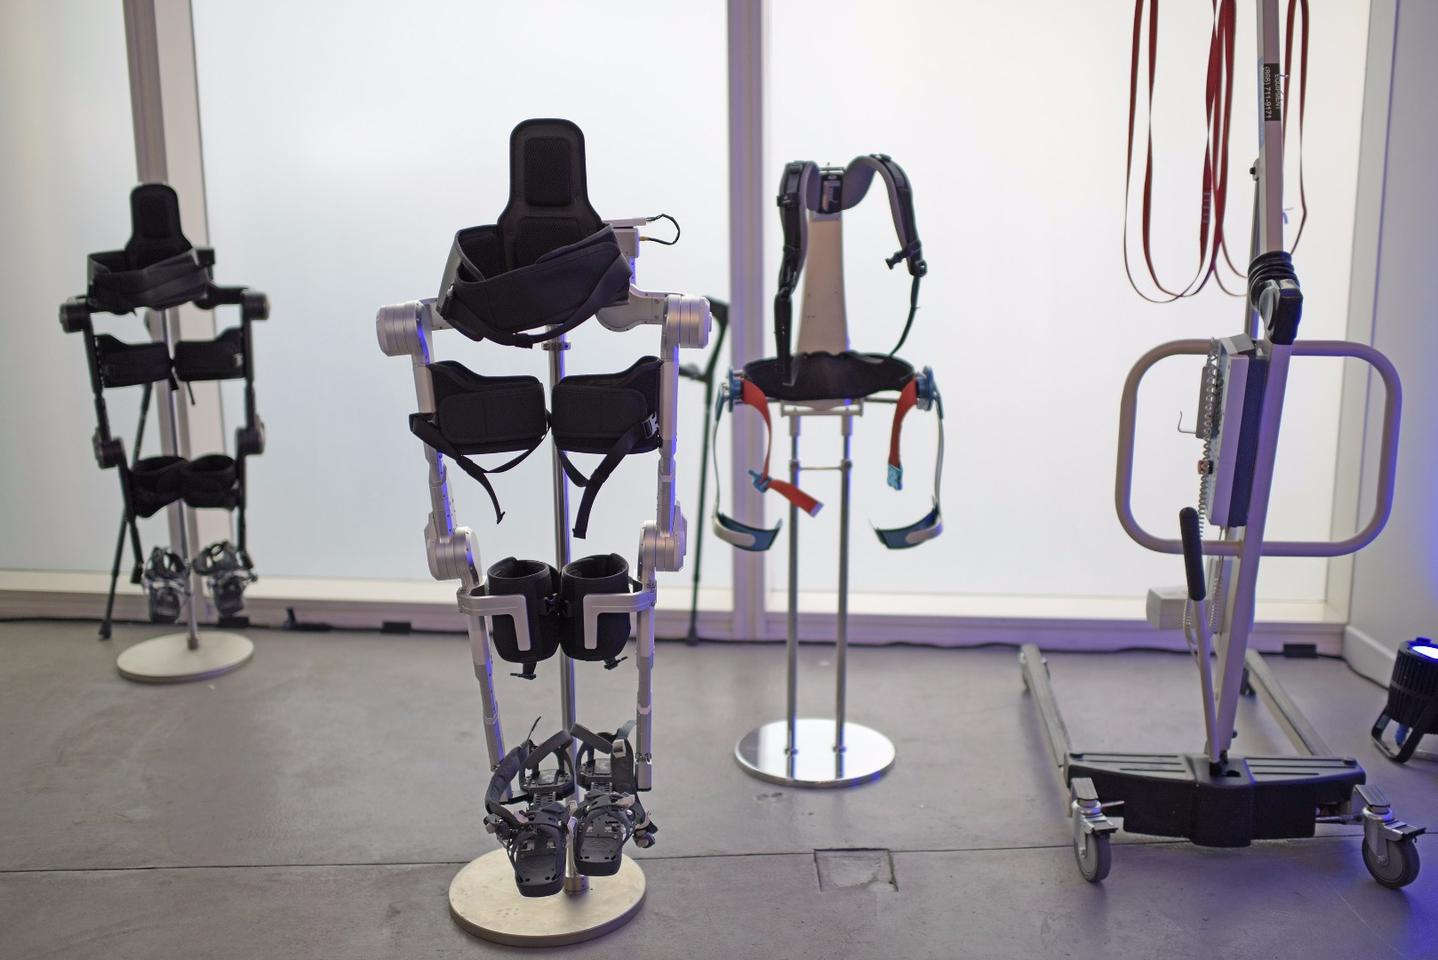 Hyundai is highlighting its robotic exoskeleton line at CES 2017